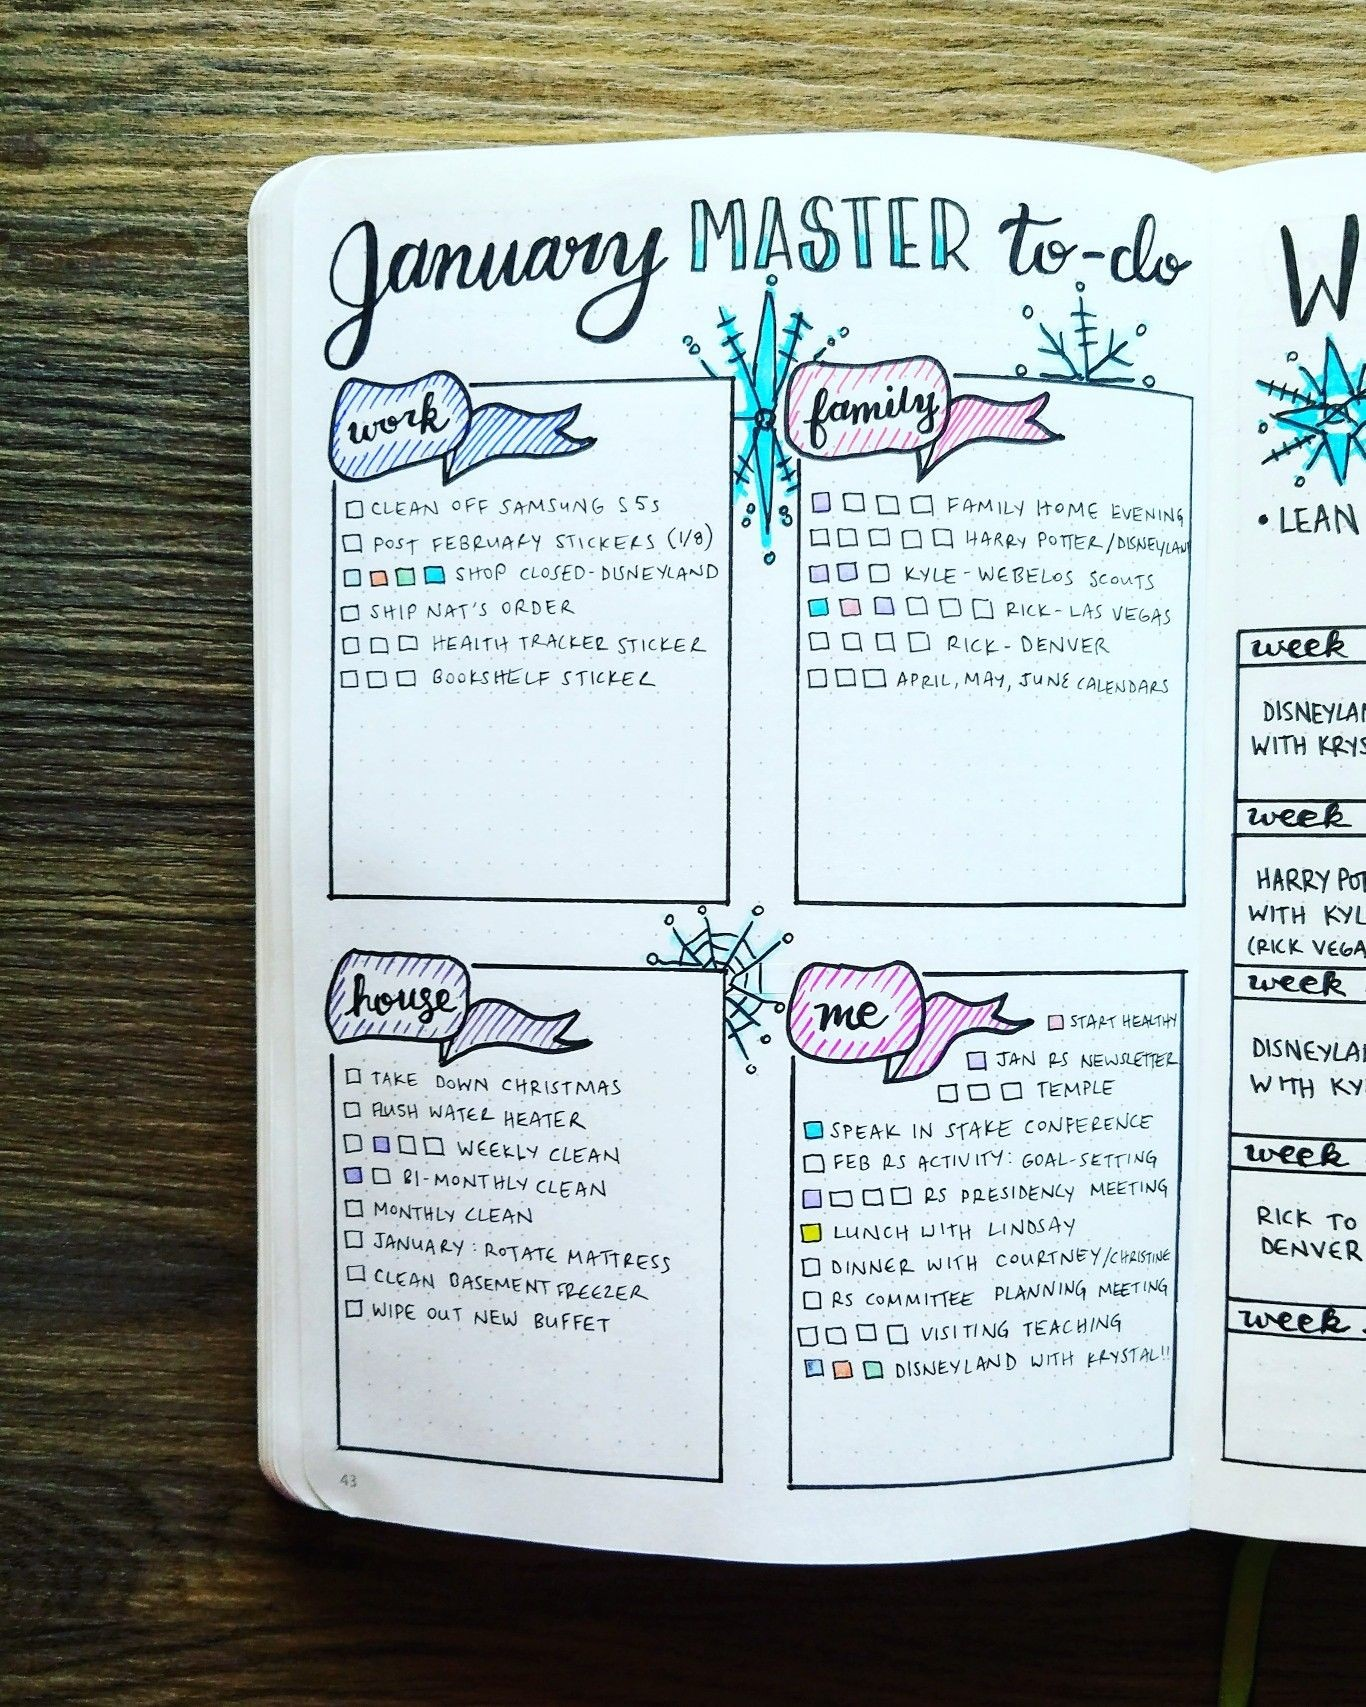 January February March Calendar Más Arriba-a-fecha Pin by Blue Sky Design On Bullet Journaling Pinterest Of January February March Calendar Más Reciente Printable Calendar January February March 2019